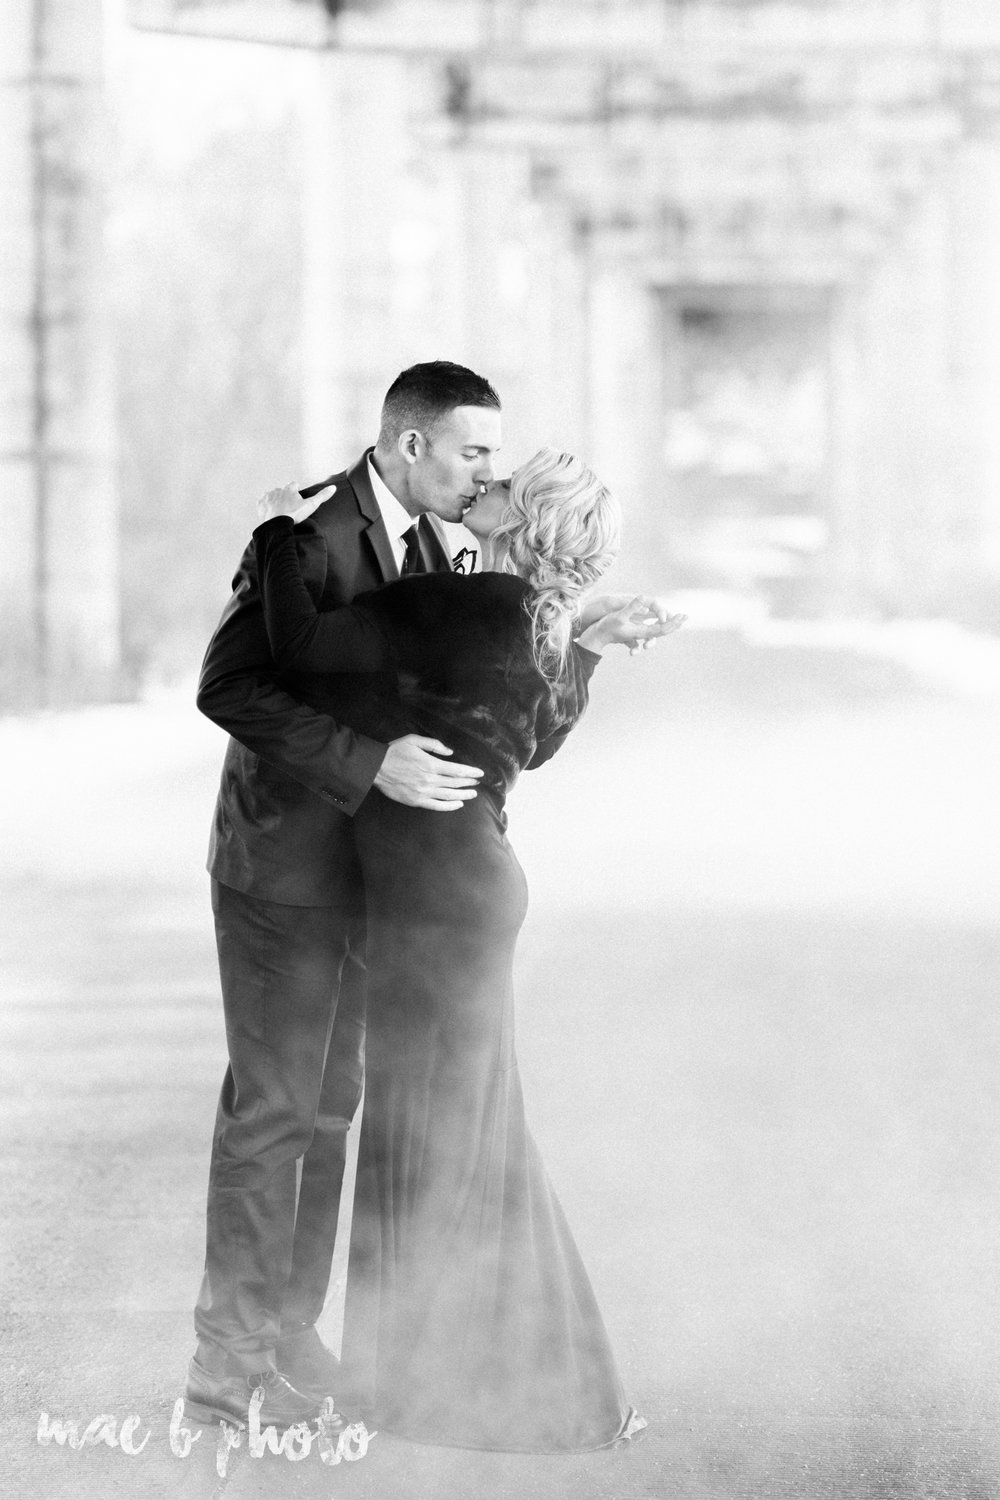 paige and cale's personalized winter glam engagement session at the butler institute of american art and downtown youngstown in youngstown ohio photographed by youngstown wedding photographer mae b photo-38.jpg